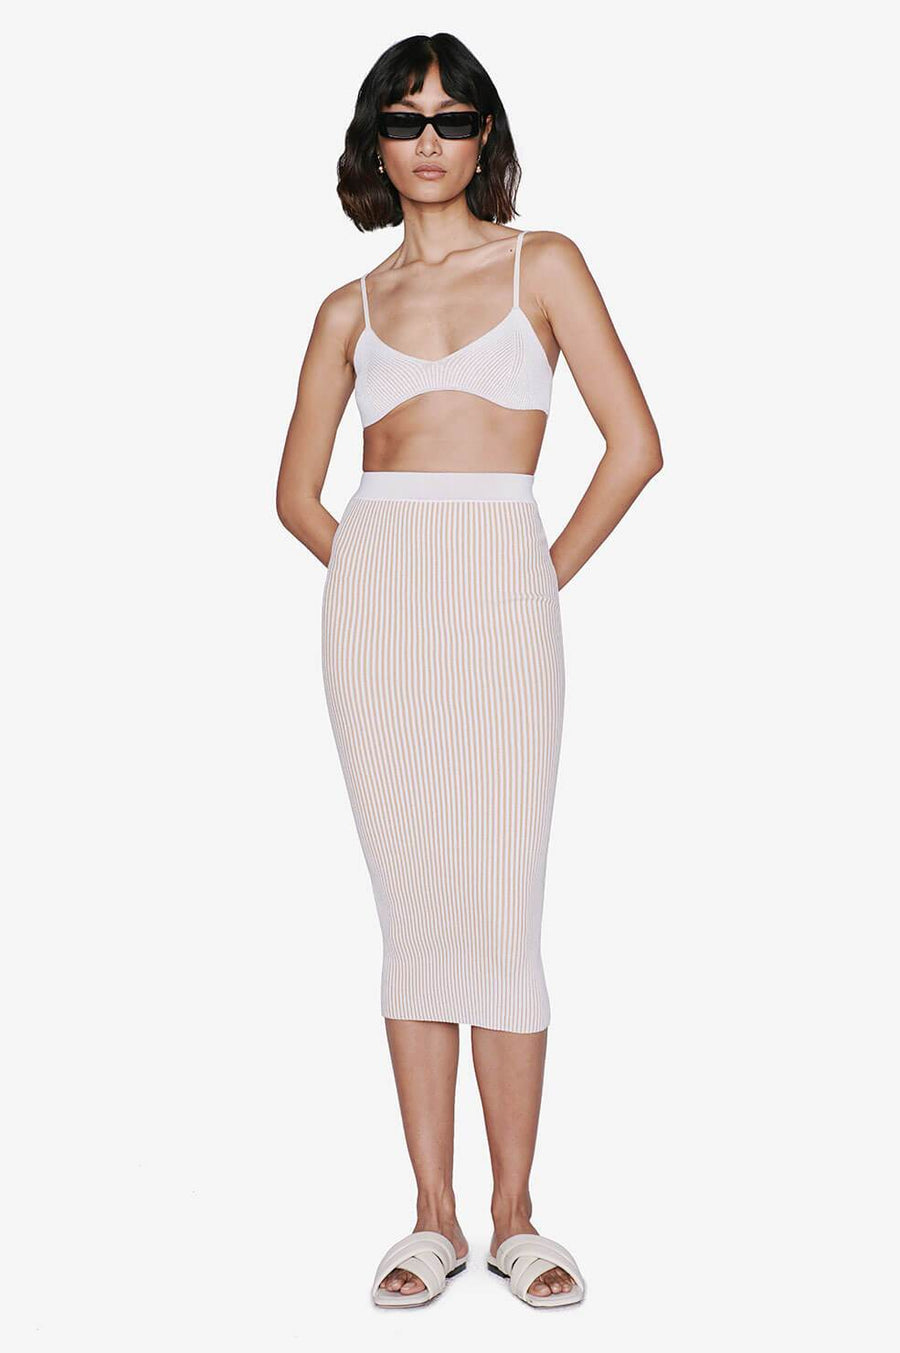 Anine Bing Julian Skirt in Camel Ivory from The New Trend